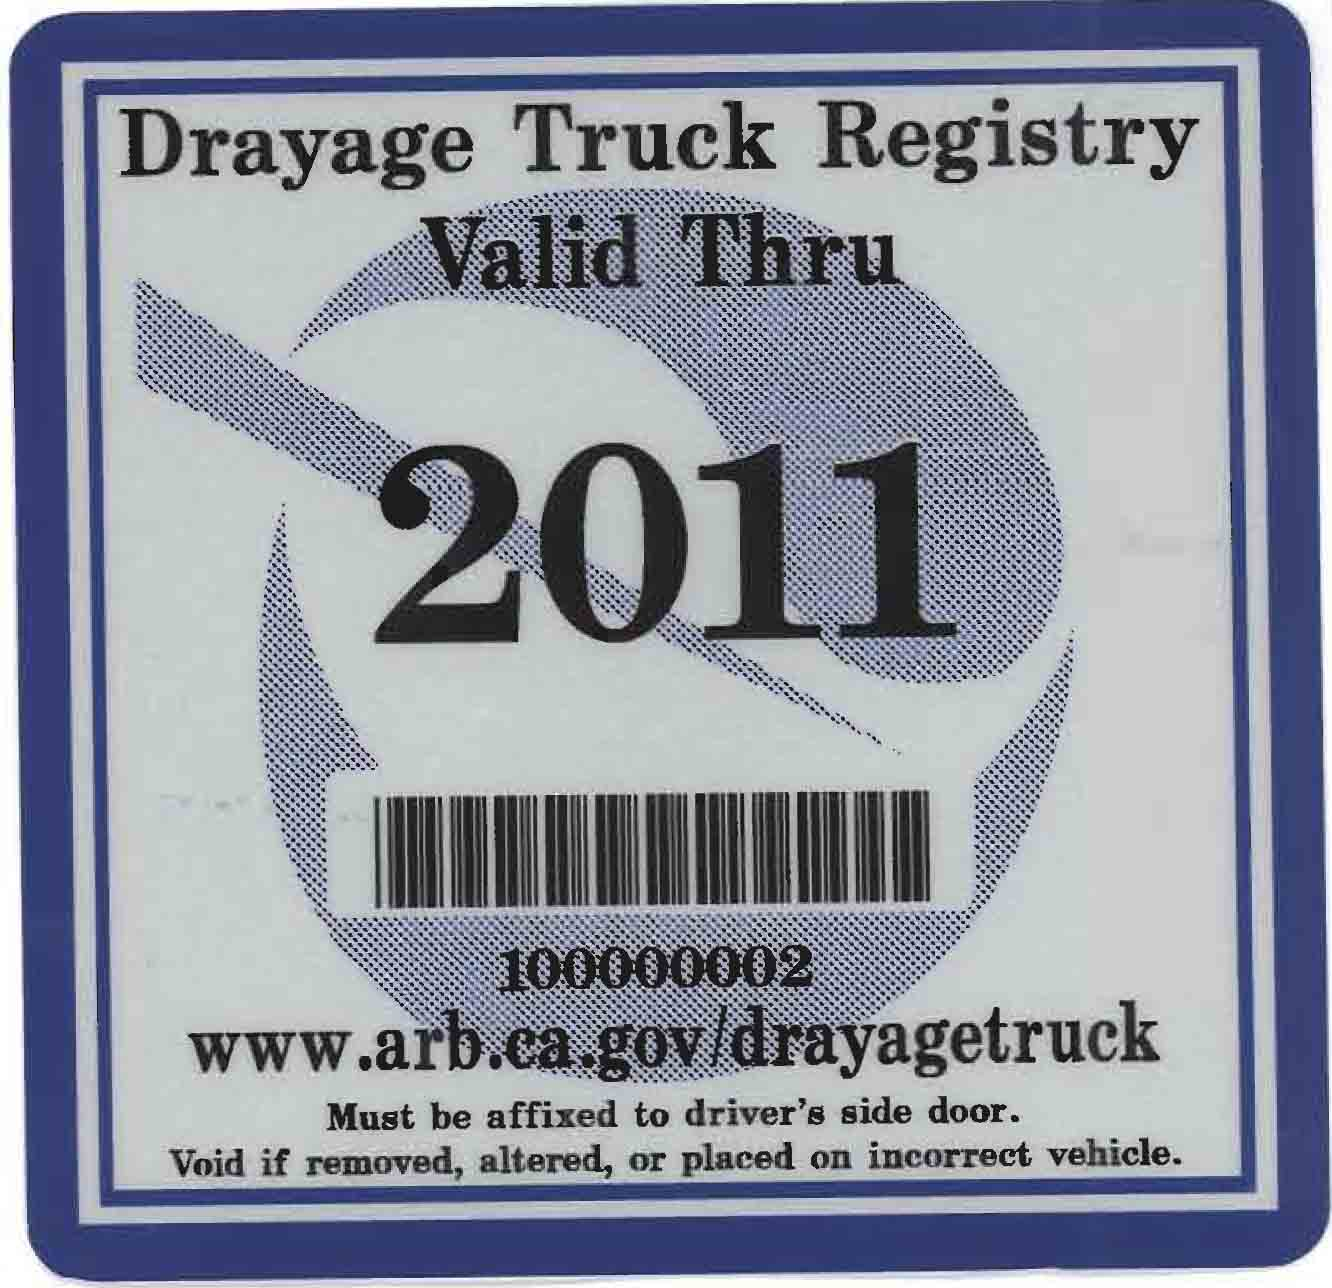 2011 compliance sticker